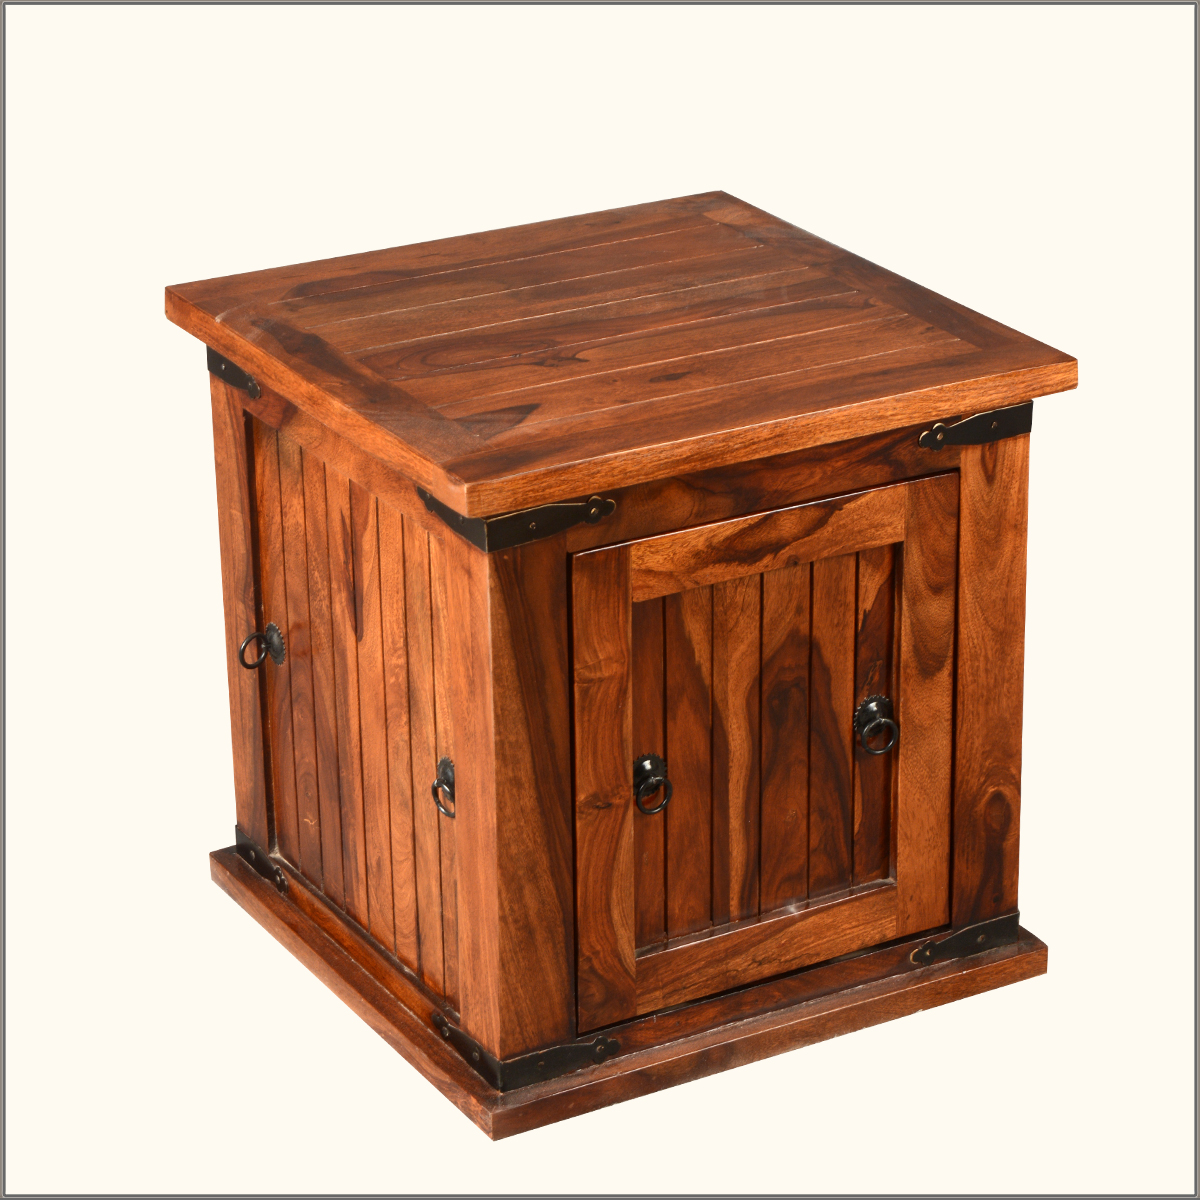 1B. Solid Wood Square Storage Box Trunk Sofa Side End Table